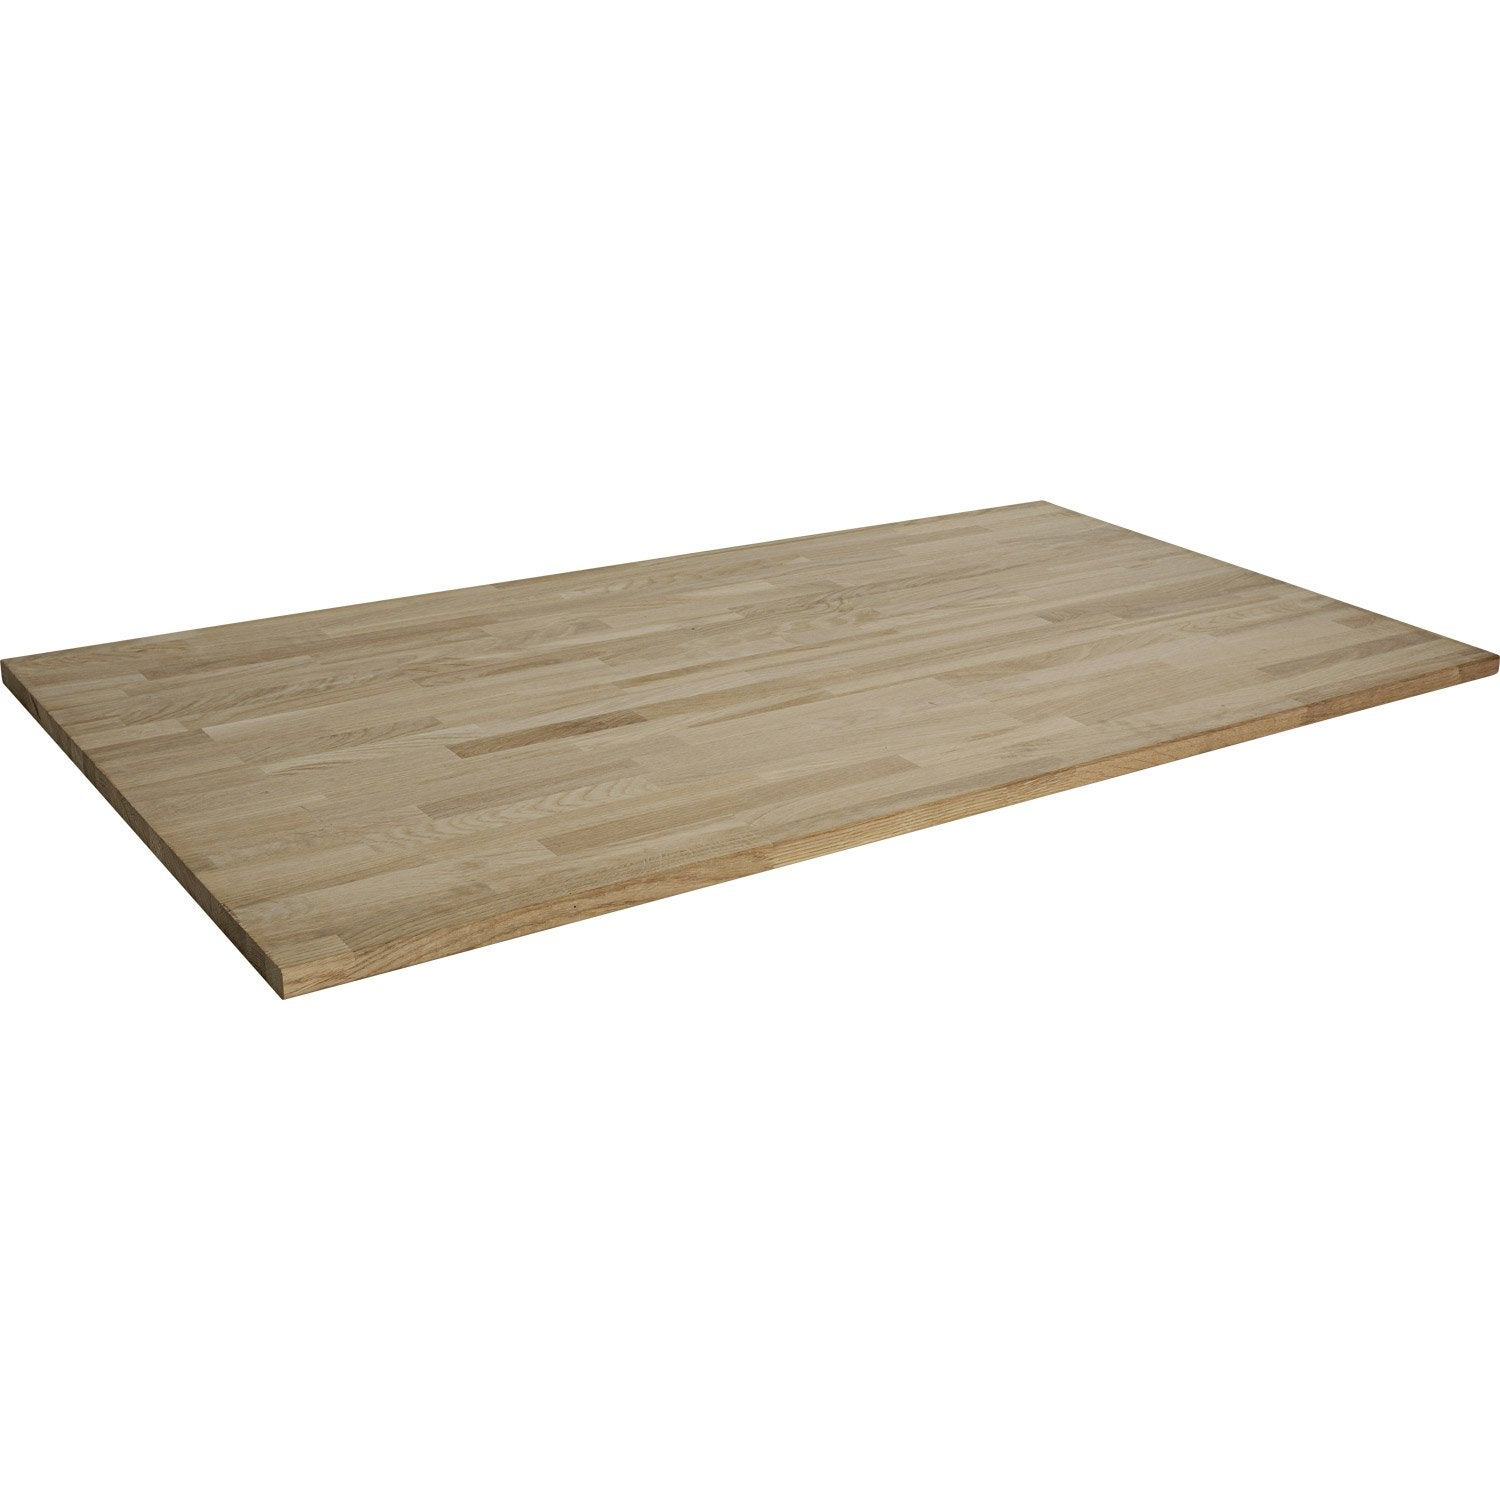 Plateau de table ch ne lamell coll x cm x mm leroy merlin - Colle bois leroy merlin ...